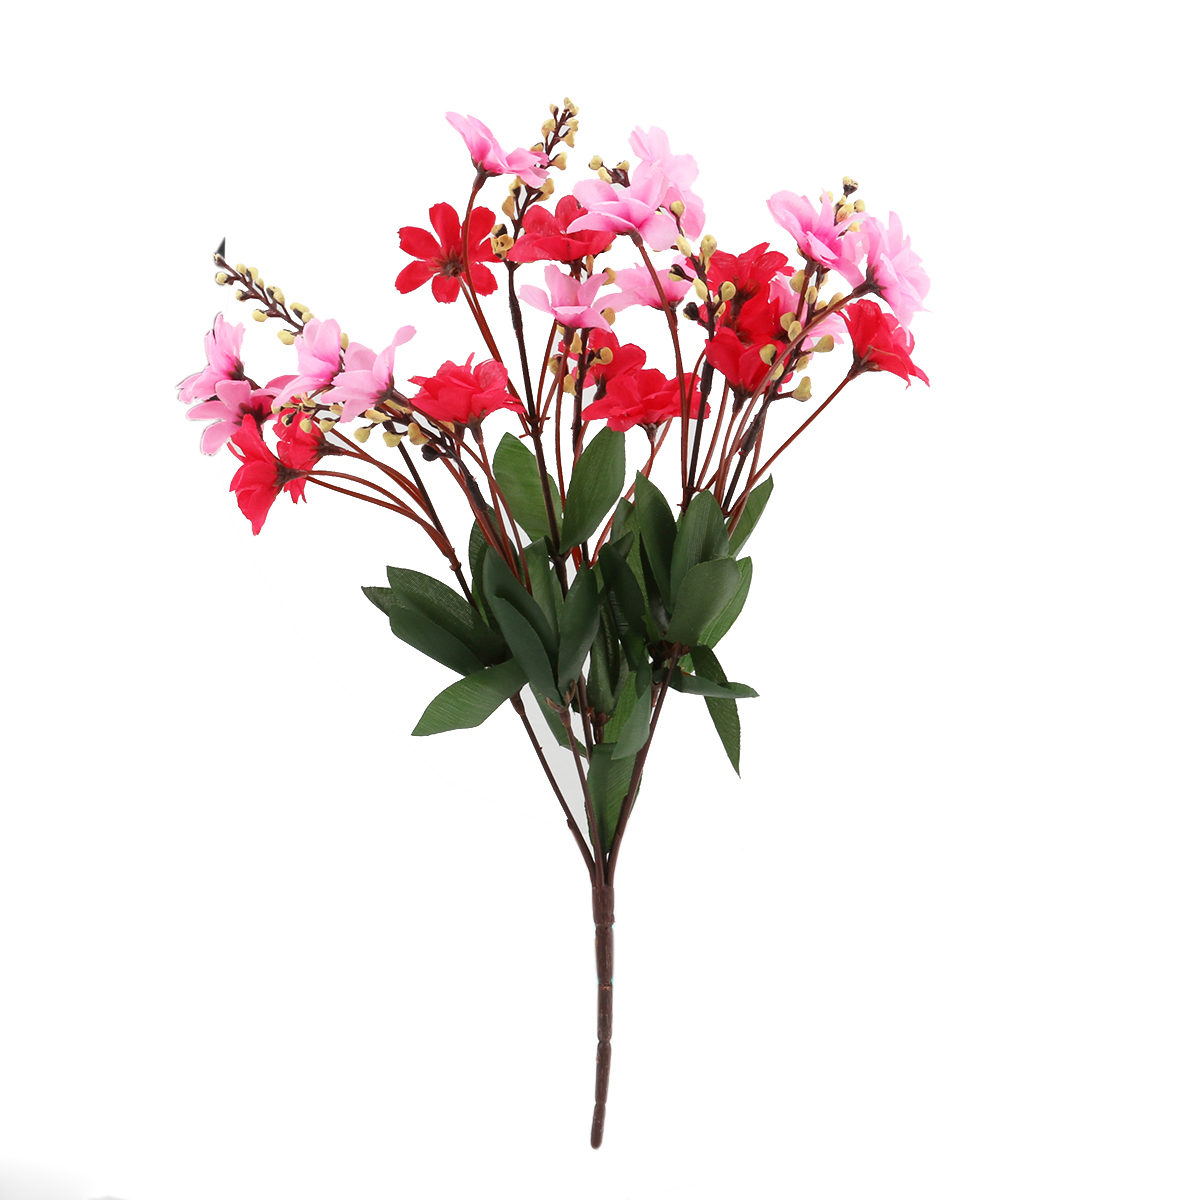 Buy Red Daisy Flowers And Get Free Shipping On Aliexpress